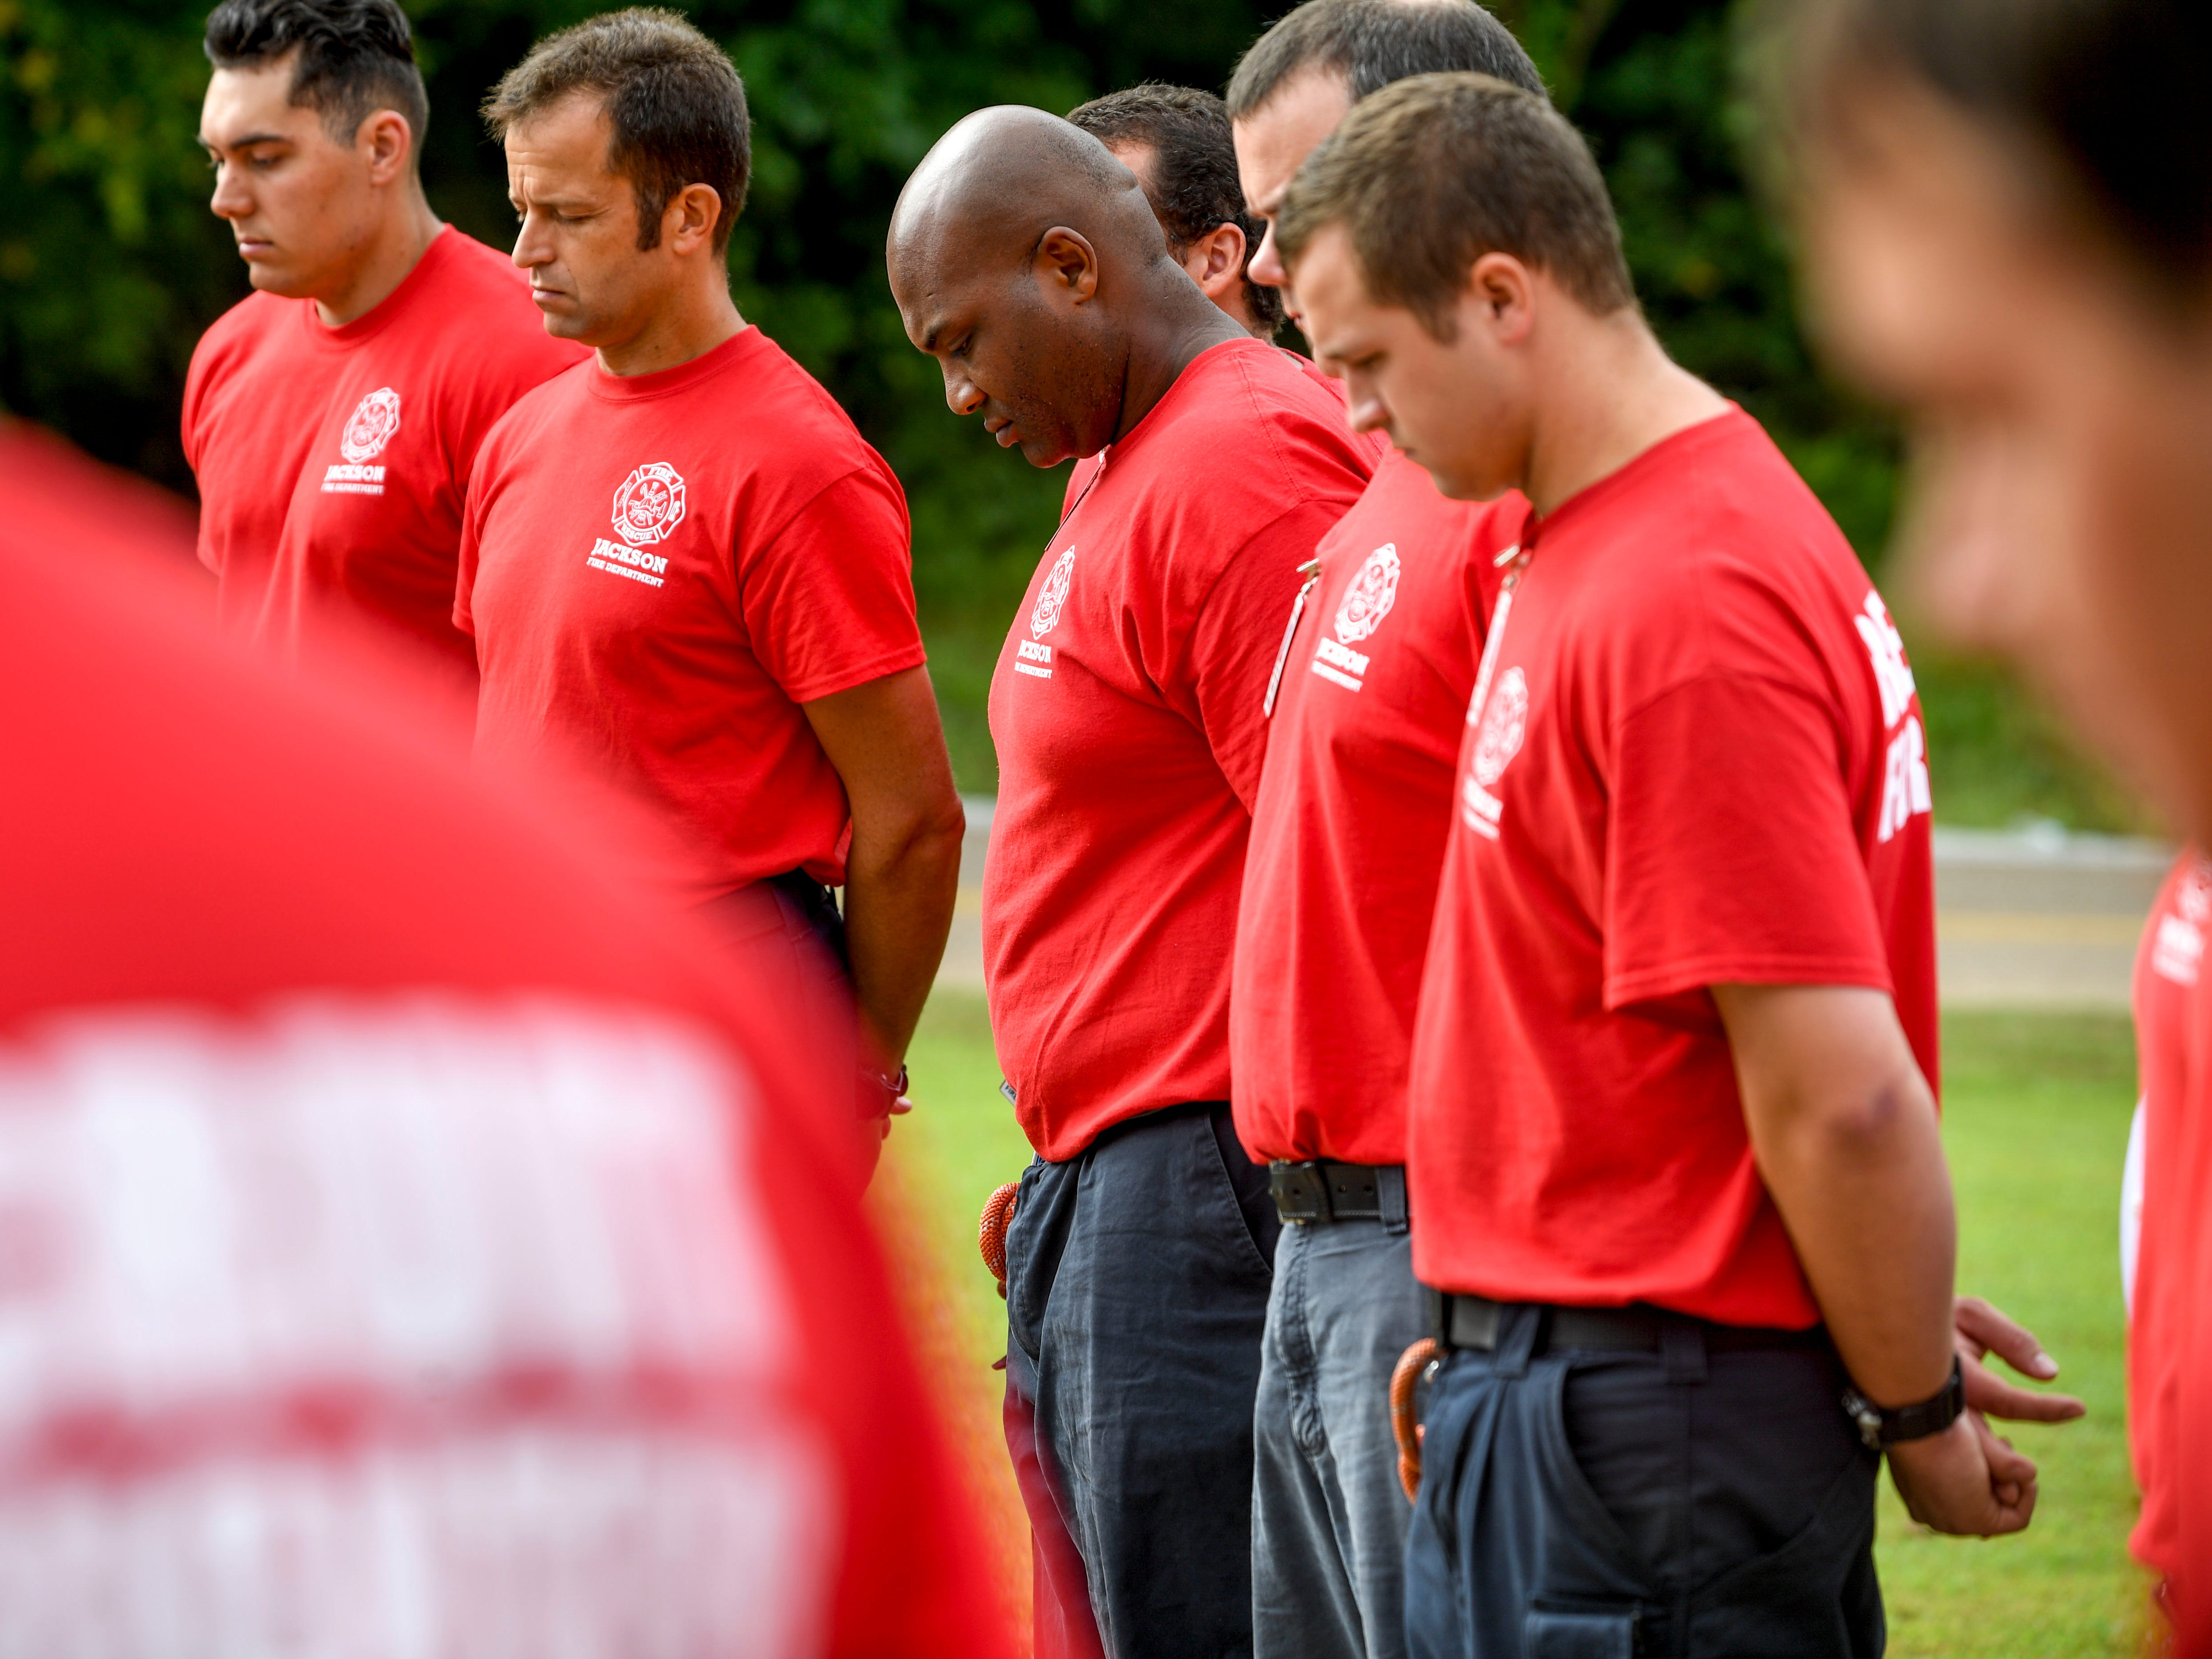 New firefighter recruits for the Jackson Fire Department bow their heads during a ceremony honoring the victims of the 9/11 attacks at Fire Station 3 in Jackson, Tenn., on Tuesday, Sept. 11, 2018.